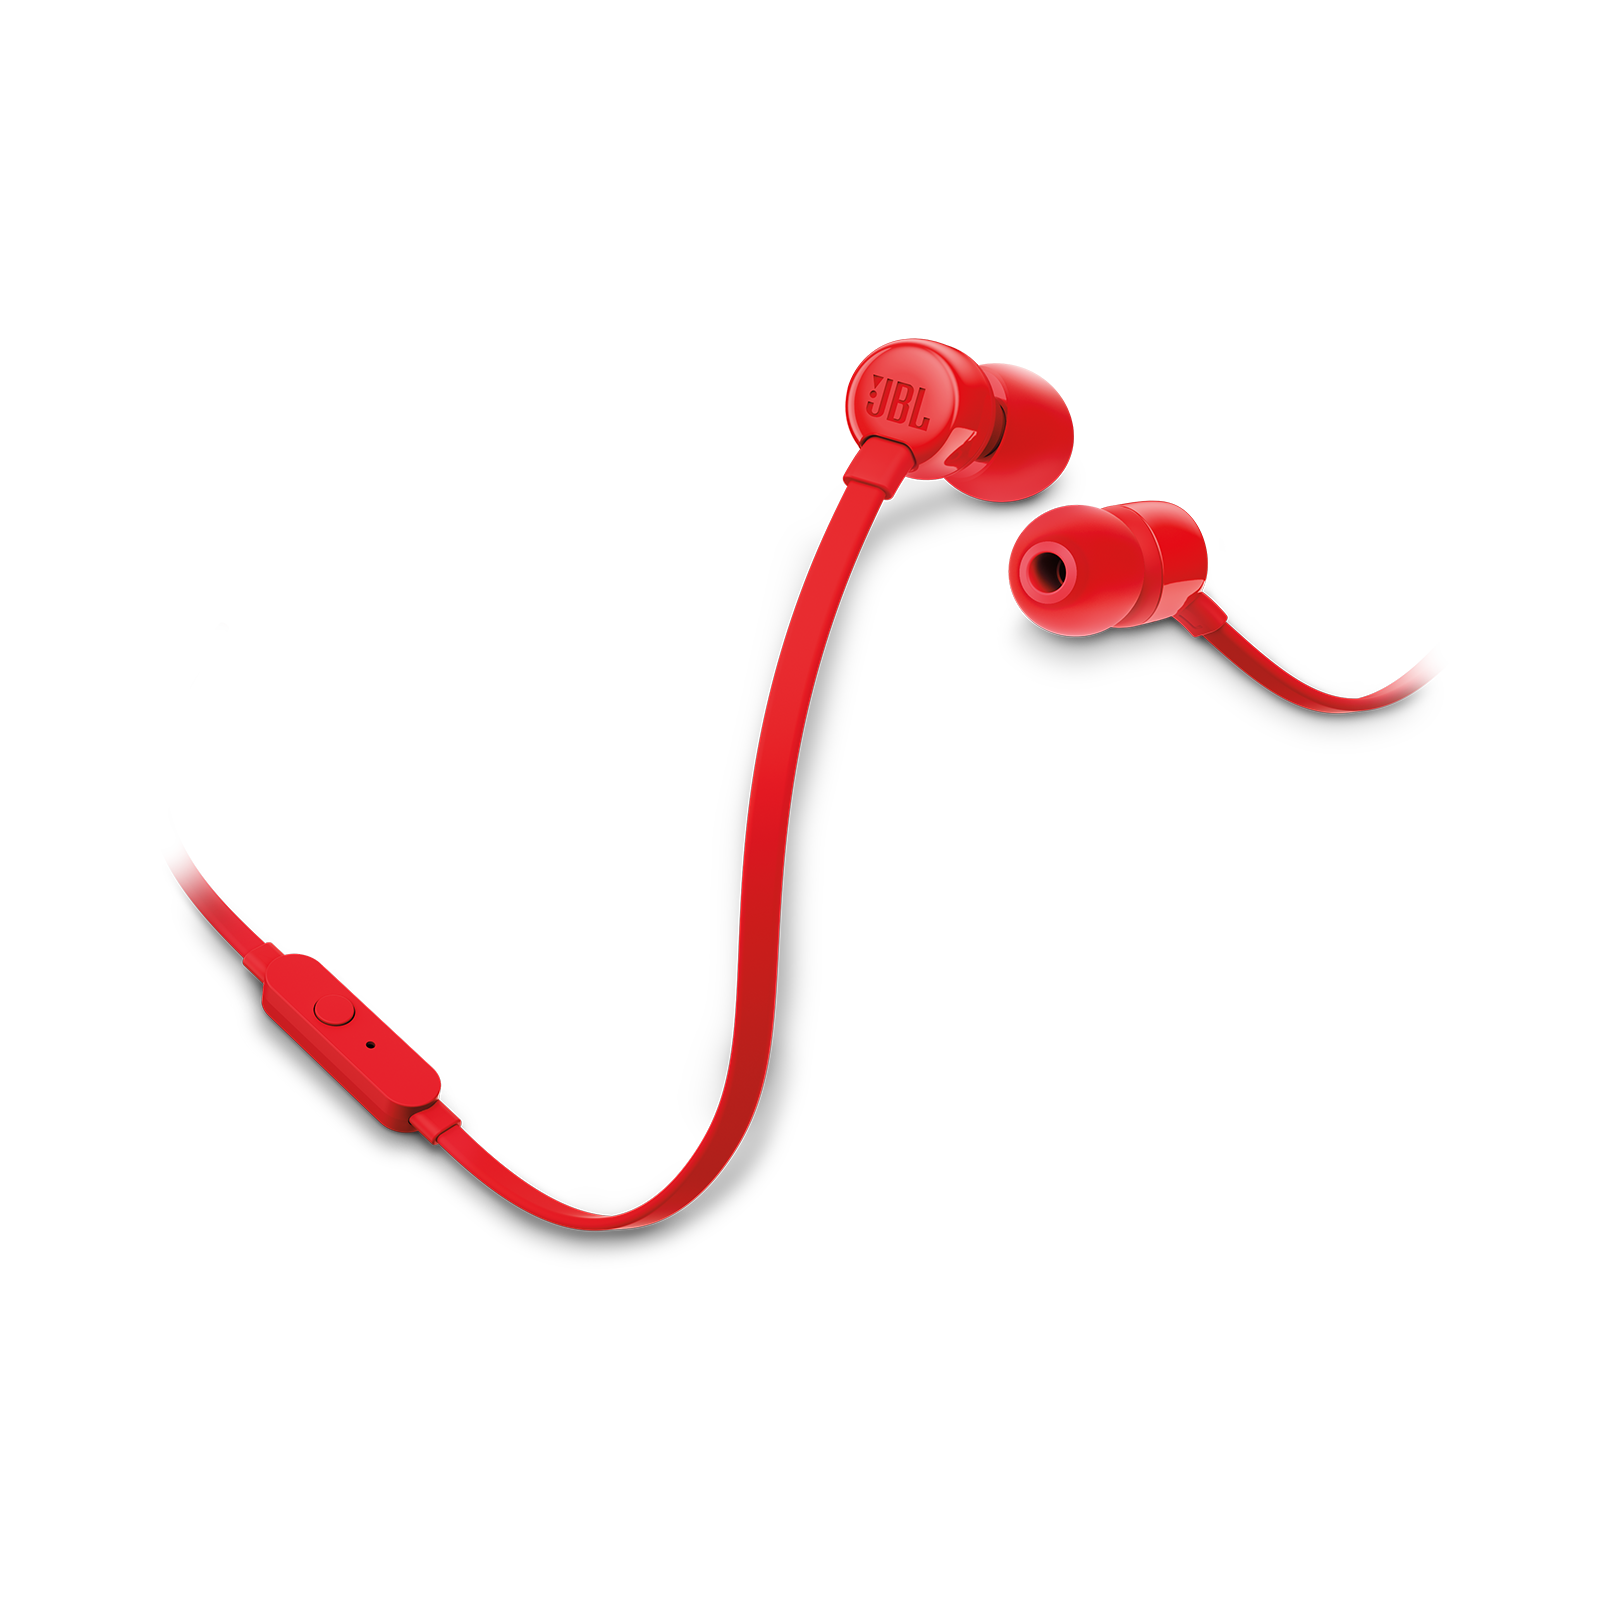 JBL TUNE 160 - Red - In-ear headphones - Hero